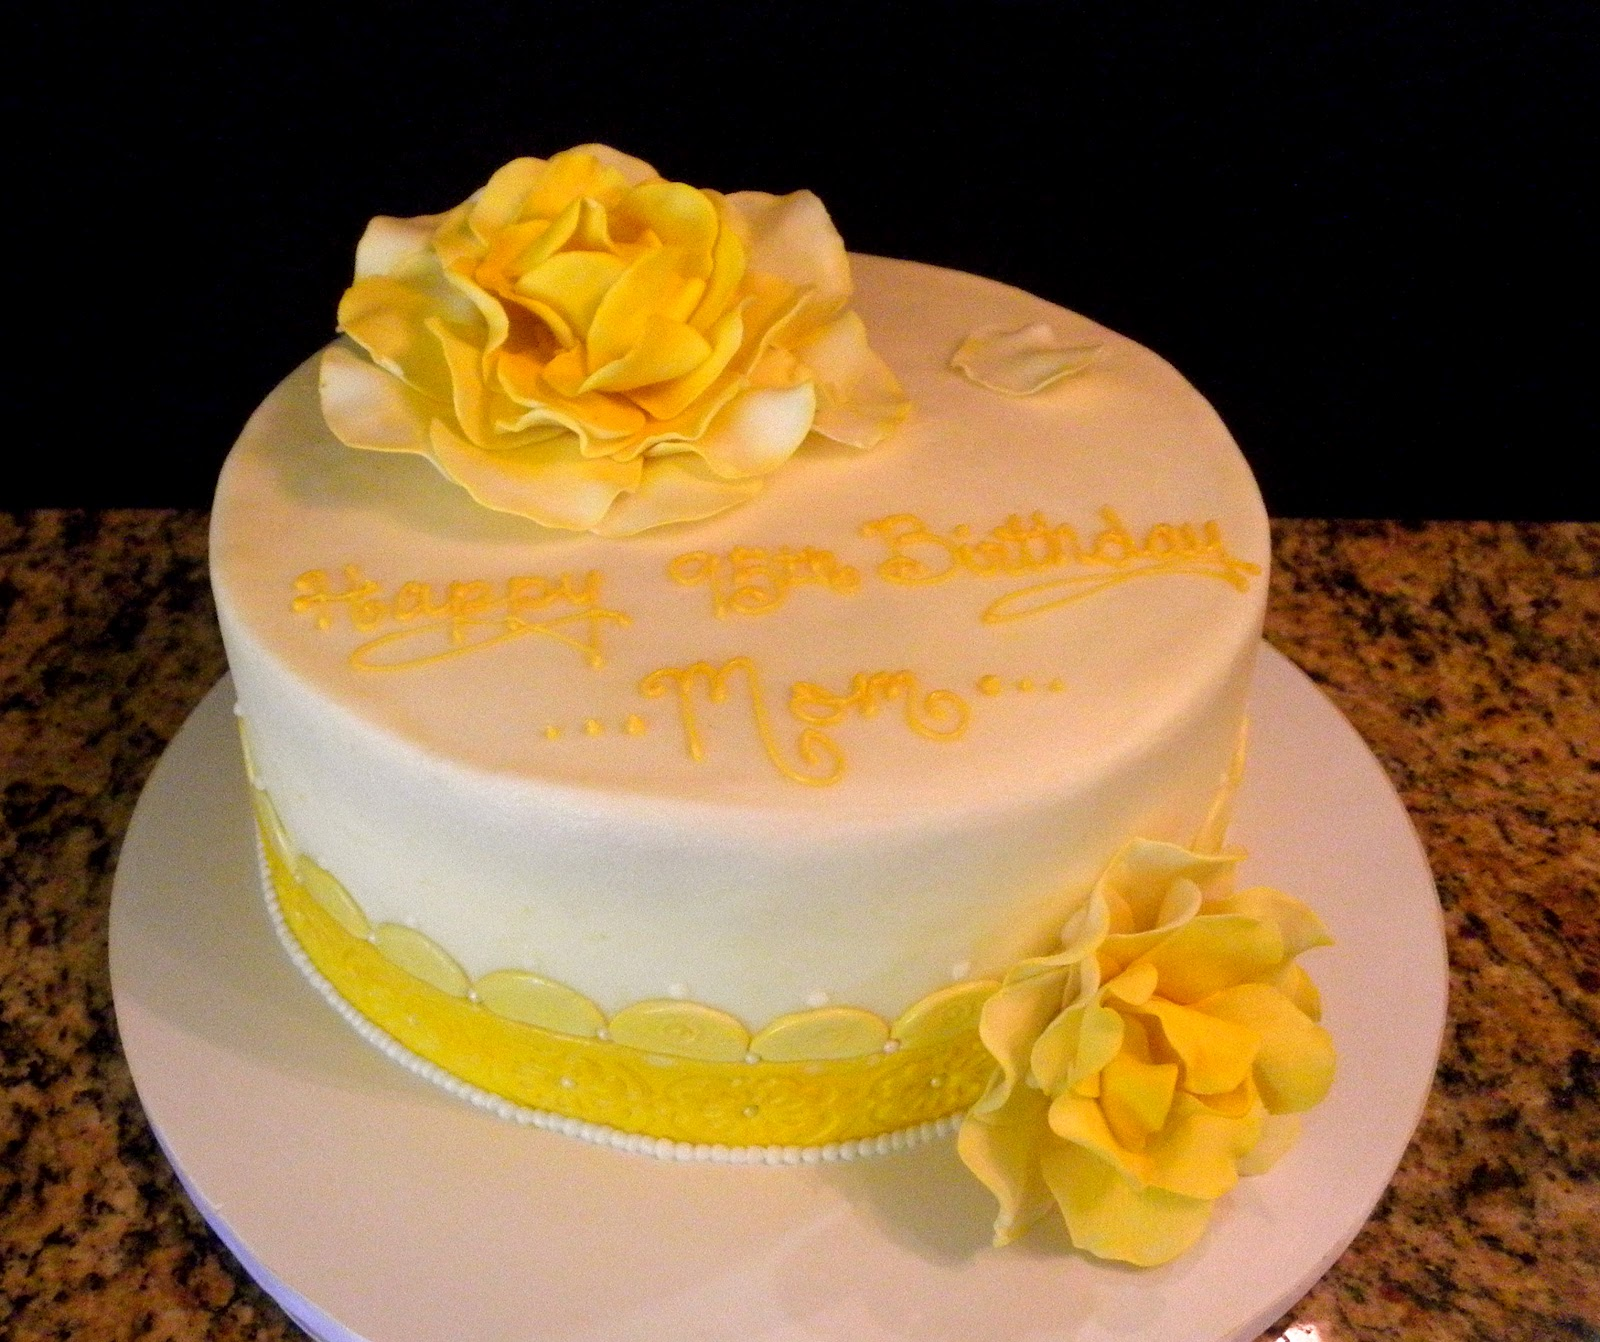 Sweet T s Cake Design: Yellow Rose Birthday Cake